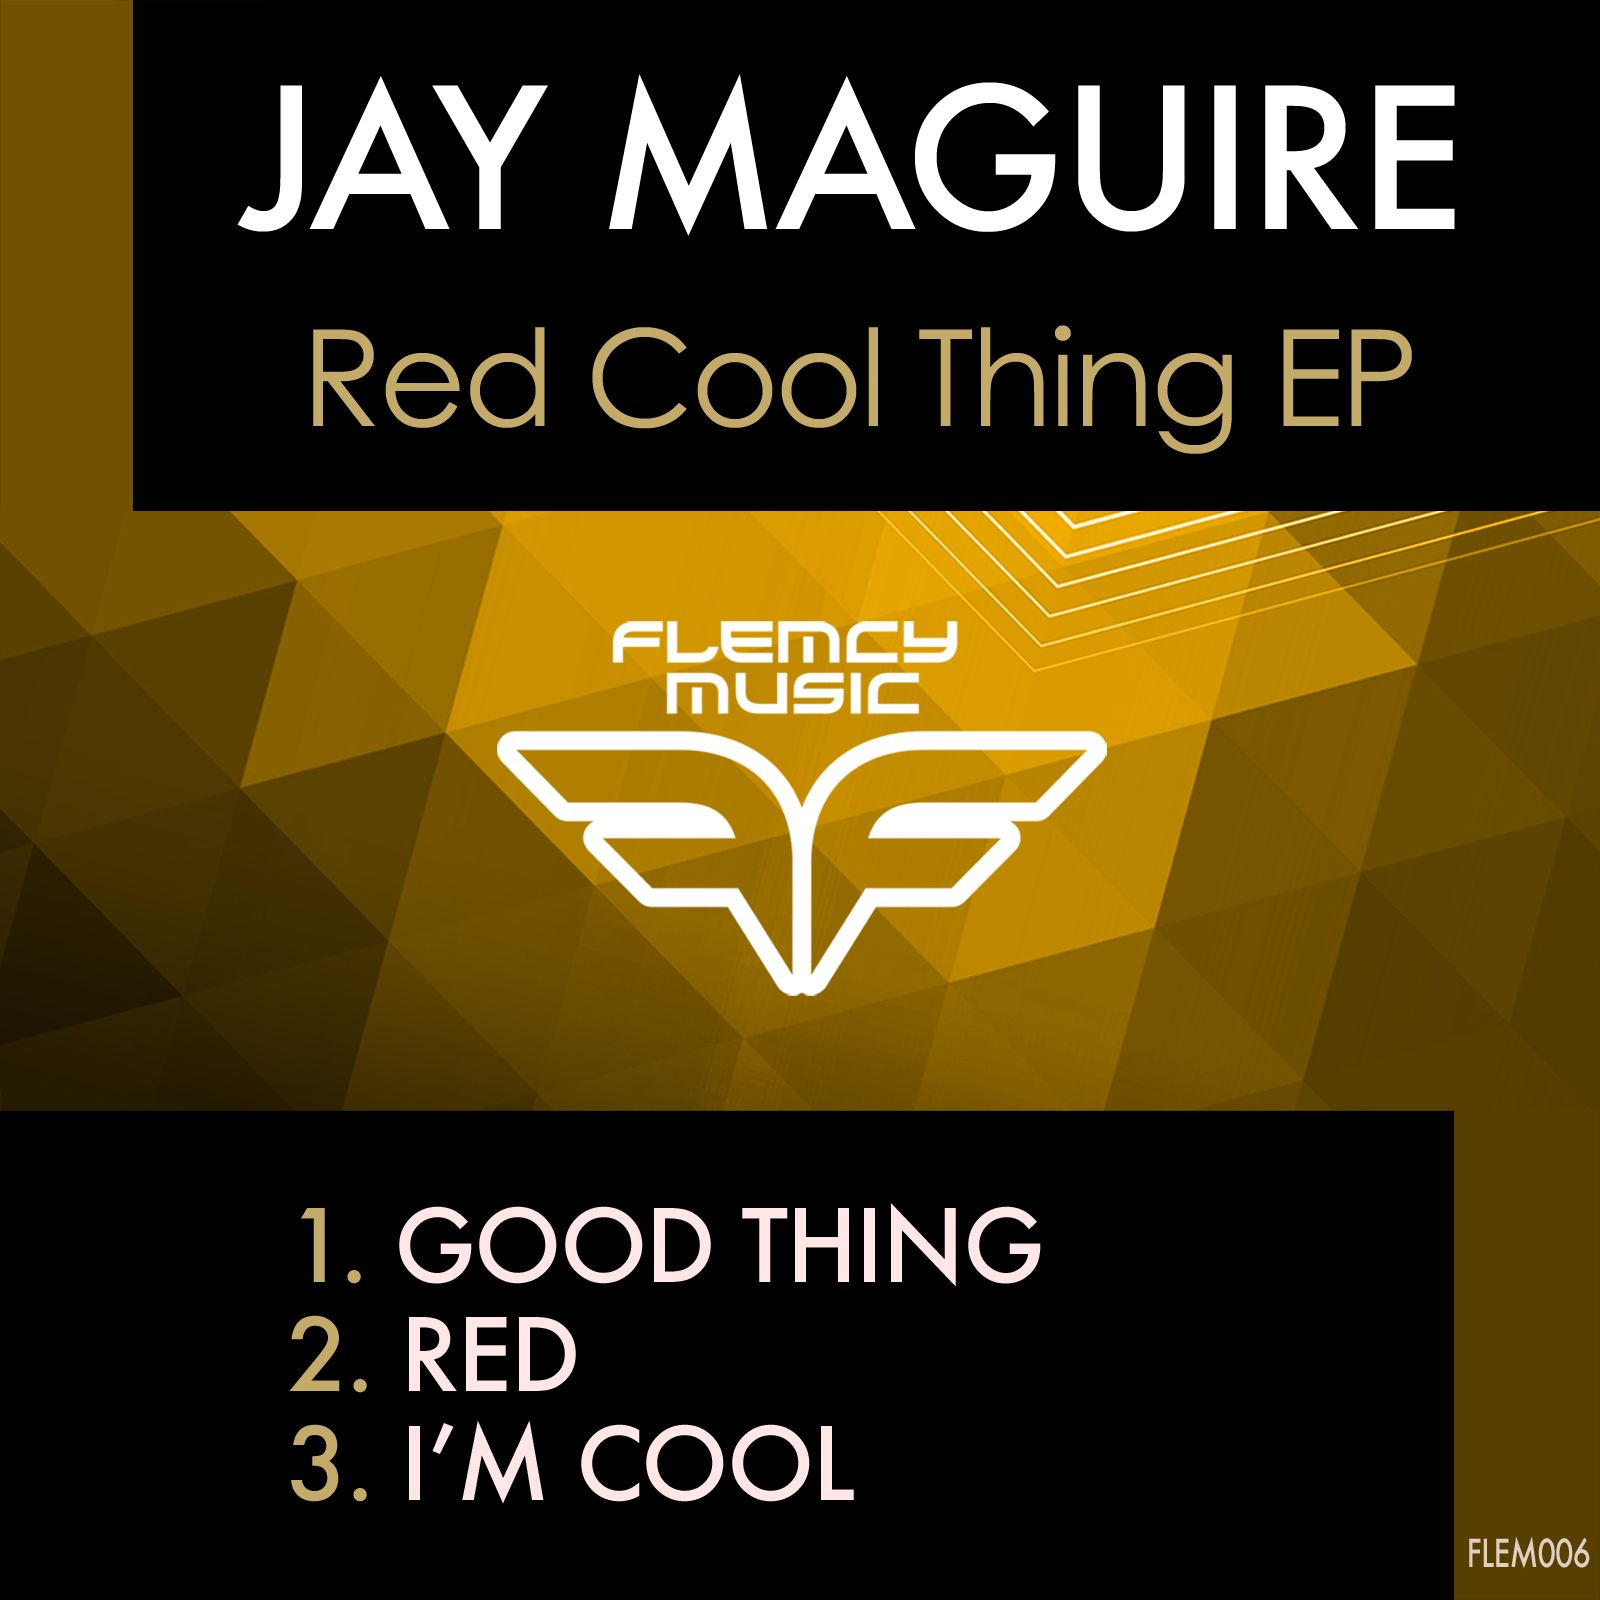 jay_maguire_-_red_cool_thing.jpg